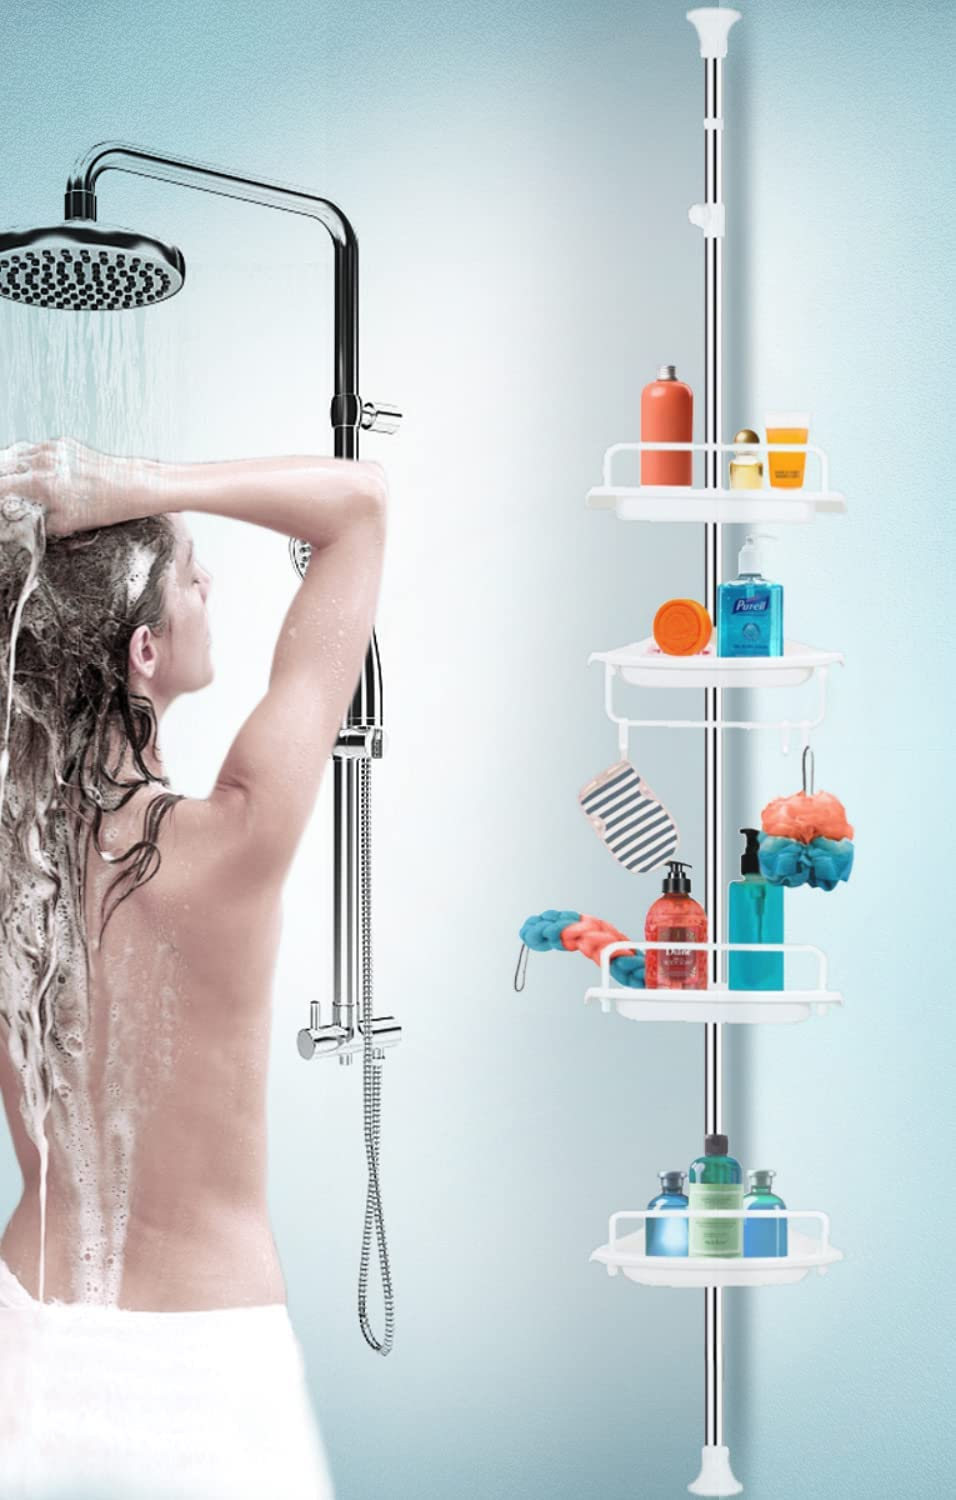 Strong Shower Storage Ranking TOP9 Caddy 2021new shipping free shipping Sturdy Tension Rack Corner Comm Pole